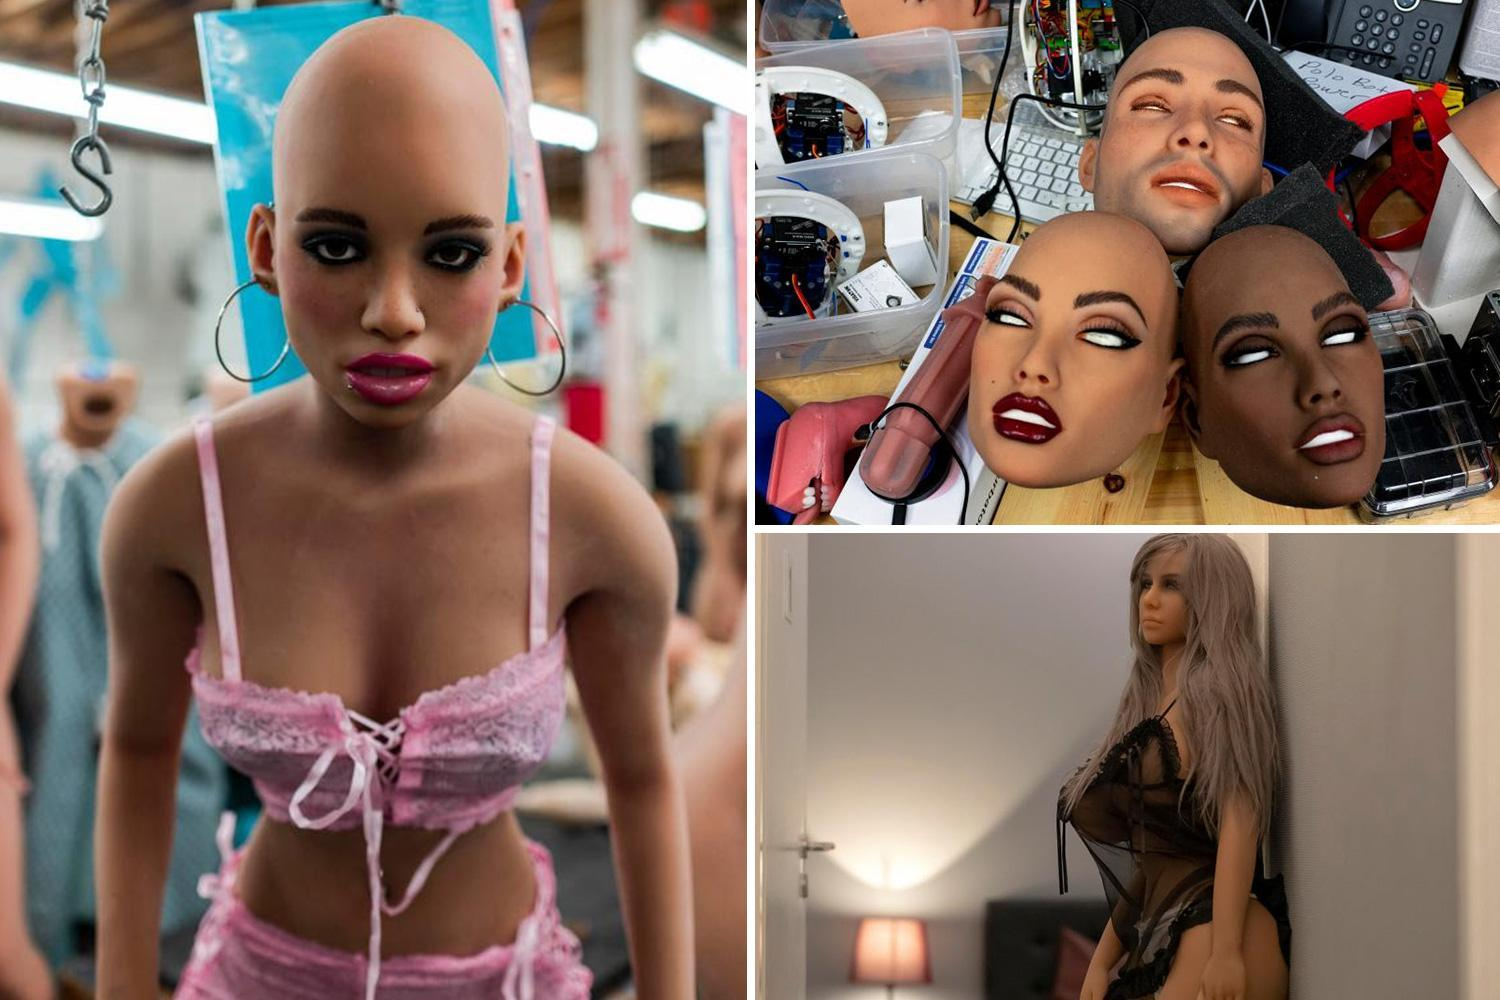 Inside the sex robot factory that's shipping £6,000 'Harmony' dolls to randy punters just in time for Christmas